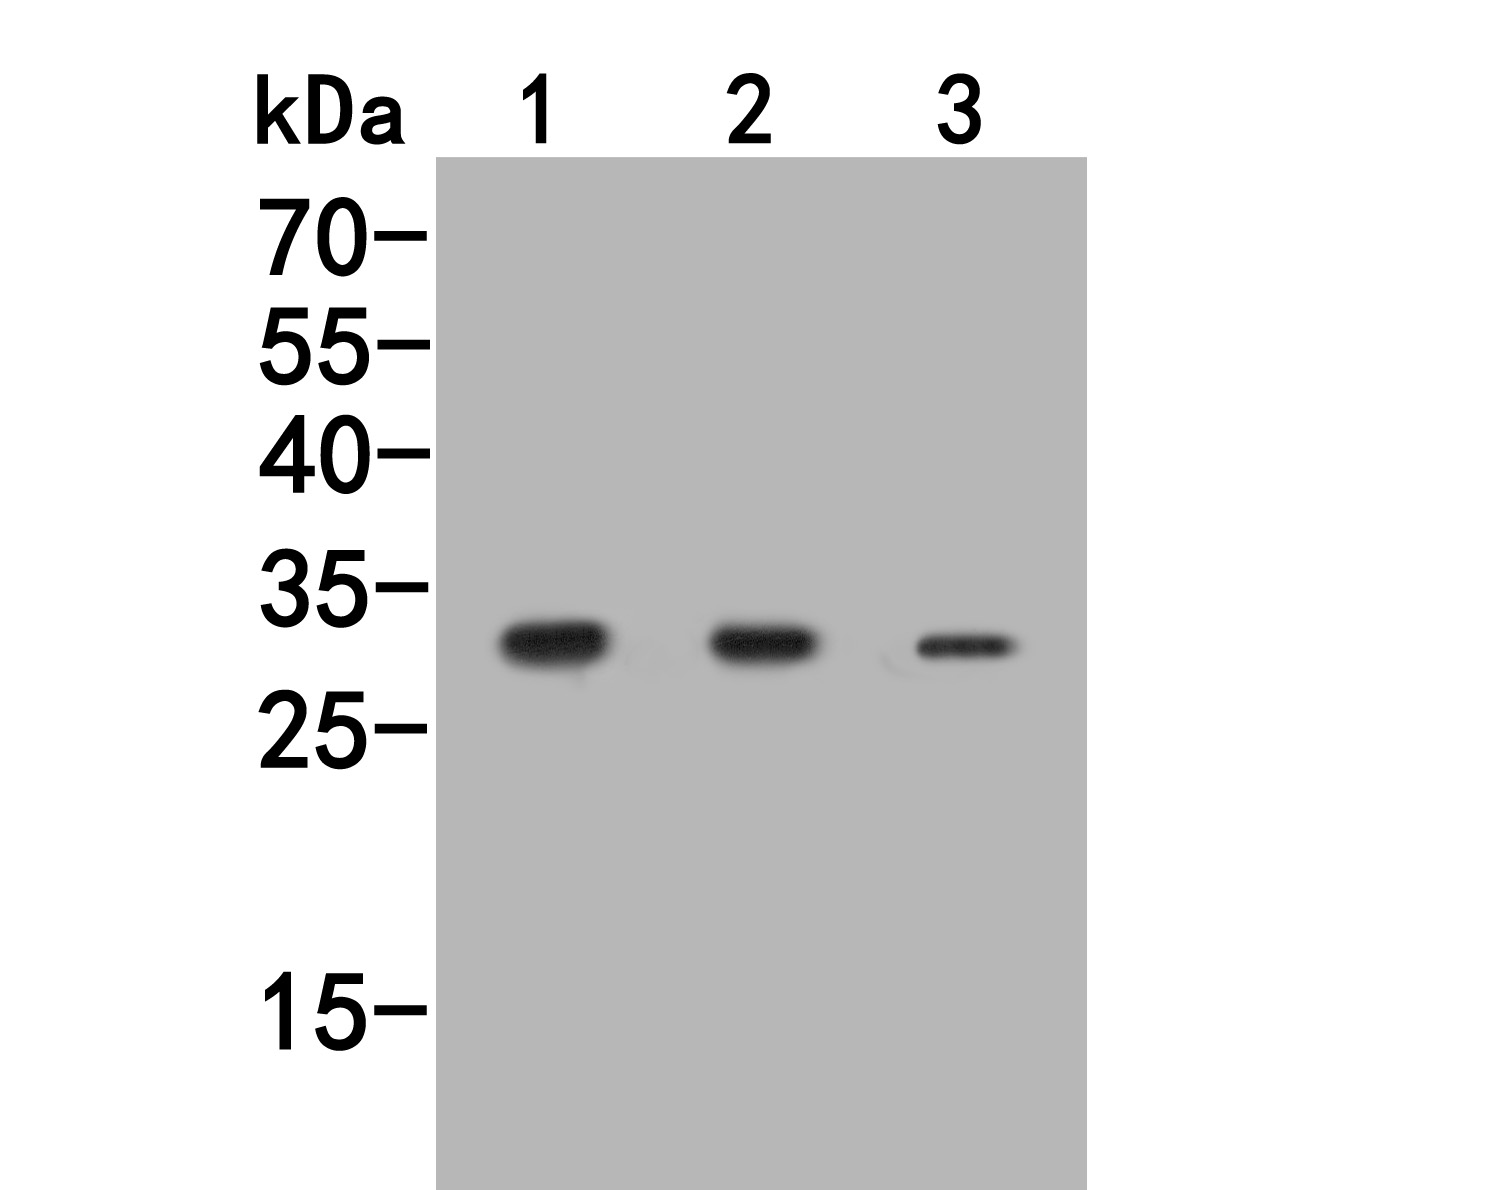 Western blot analysis of Nucleoside Phosphorylase on different lysates. Proteins were transferred to a PVDF membrane and blocked with 5% BSA in PBS for 1 hour at room temperature. The primary antibody (HA500062, 1/500) was used in 5% BSA at room temperature for 2 hours. Goat Anti-Rabbit IgG - HRP Secondary Antibody (HA1001) at 1:5,000 dilution was used for 1 hour at room temperature.<br /> Positive control: <br /> Lane 1: Rat spleenl tissue lysate<br /> Lane 2: Jurkat cell lysate<br /> Lane 3: K562 cell lysate